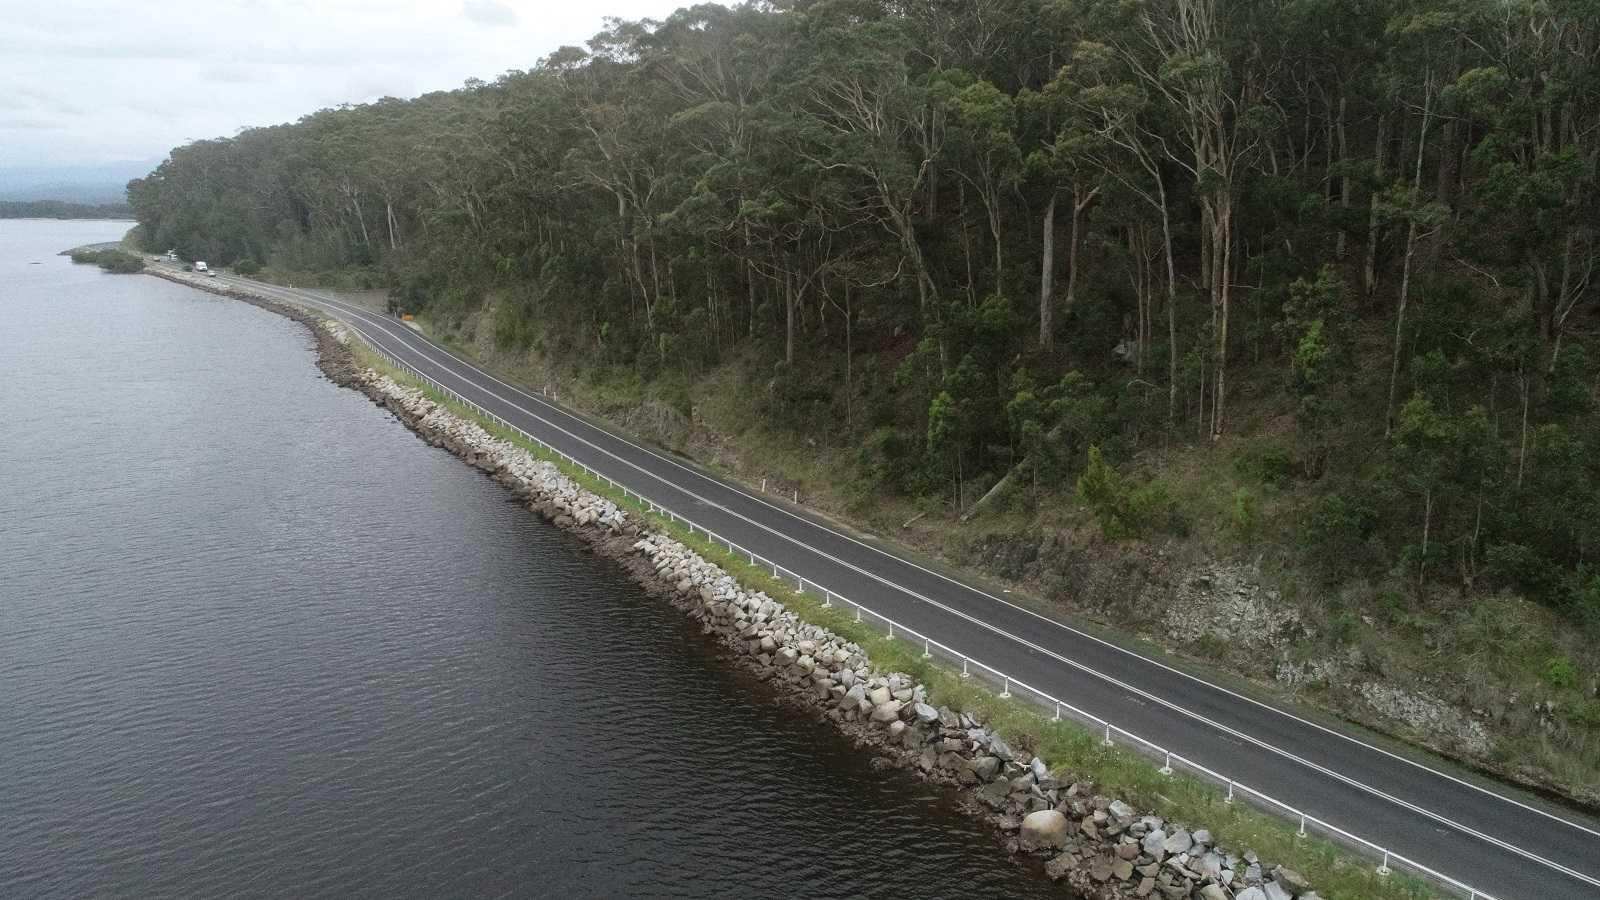 A narrow sealed road follows the edge of a body of water with a forested hill on the otherside